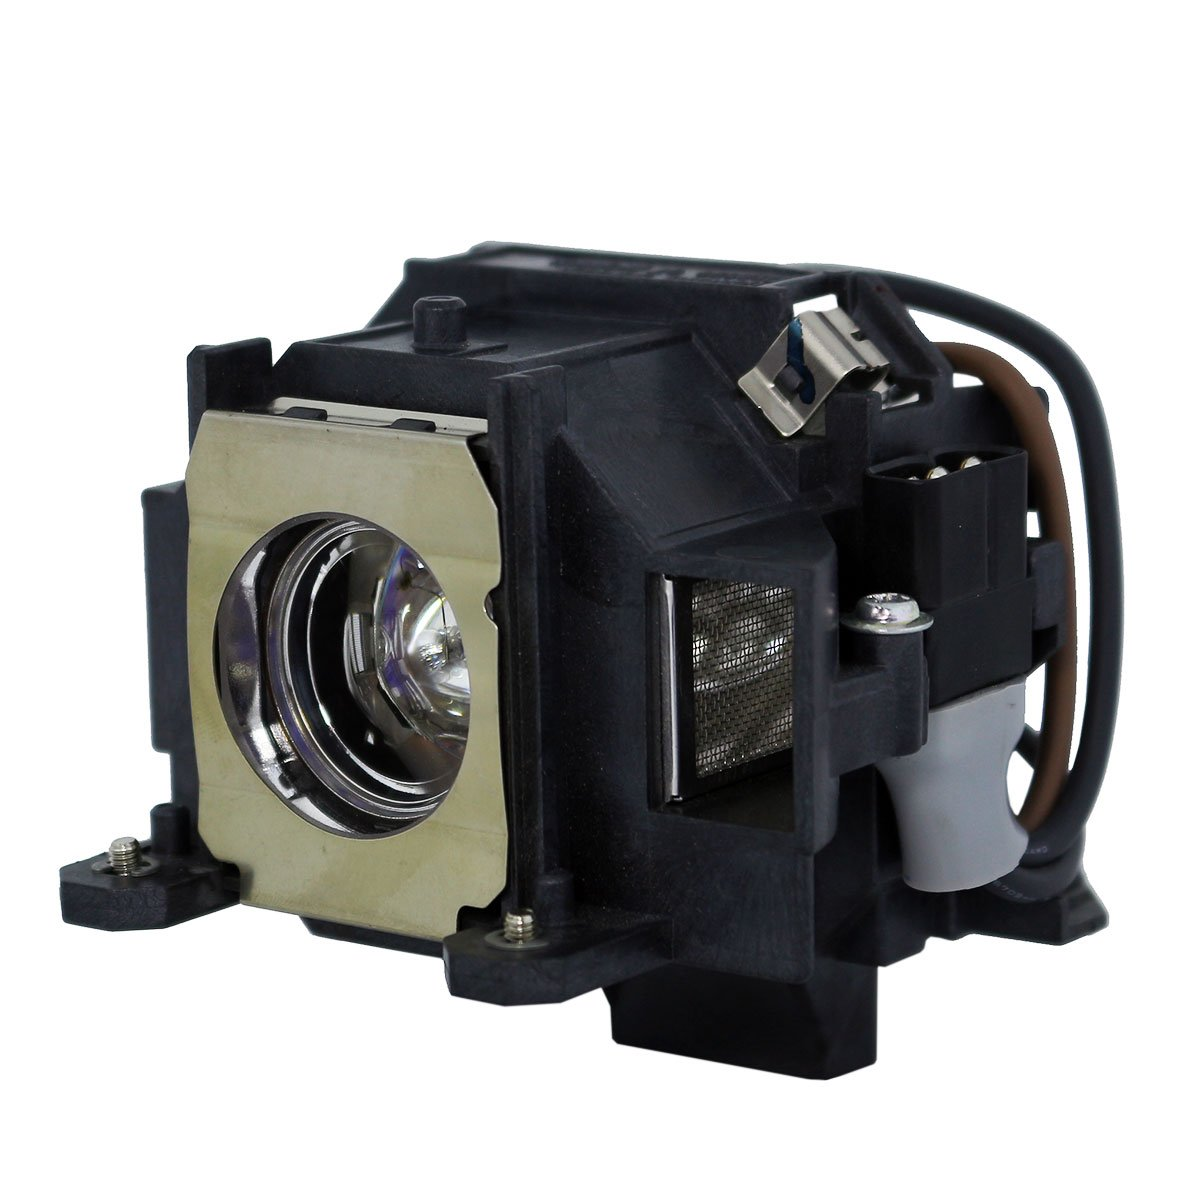 AuraBeam Professional Epson ELPLP40 Projector Replacement Lamp with Housing (Powered by Ushio)